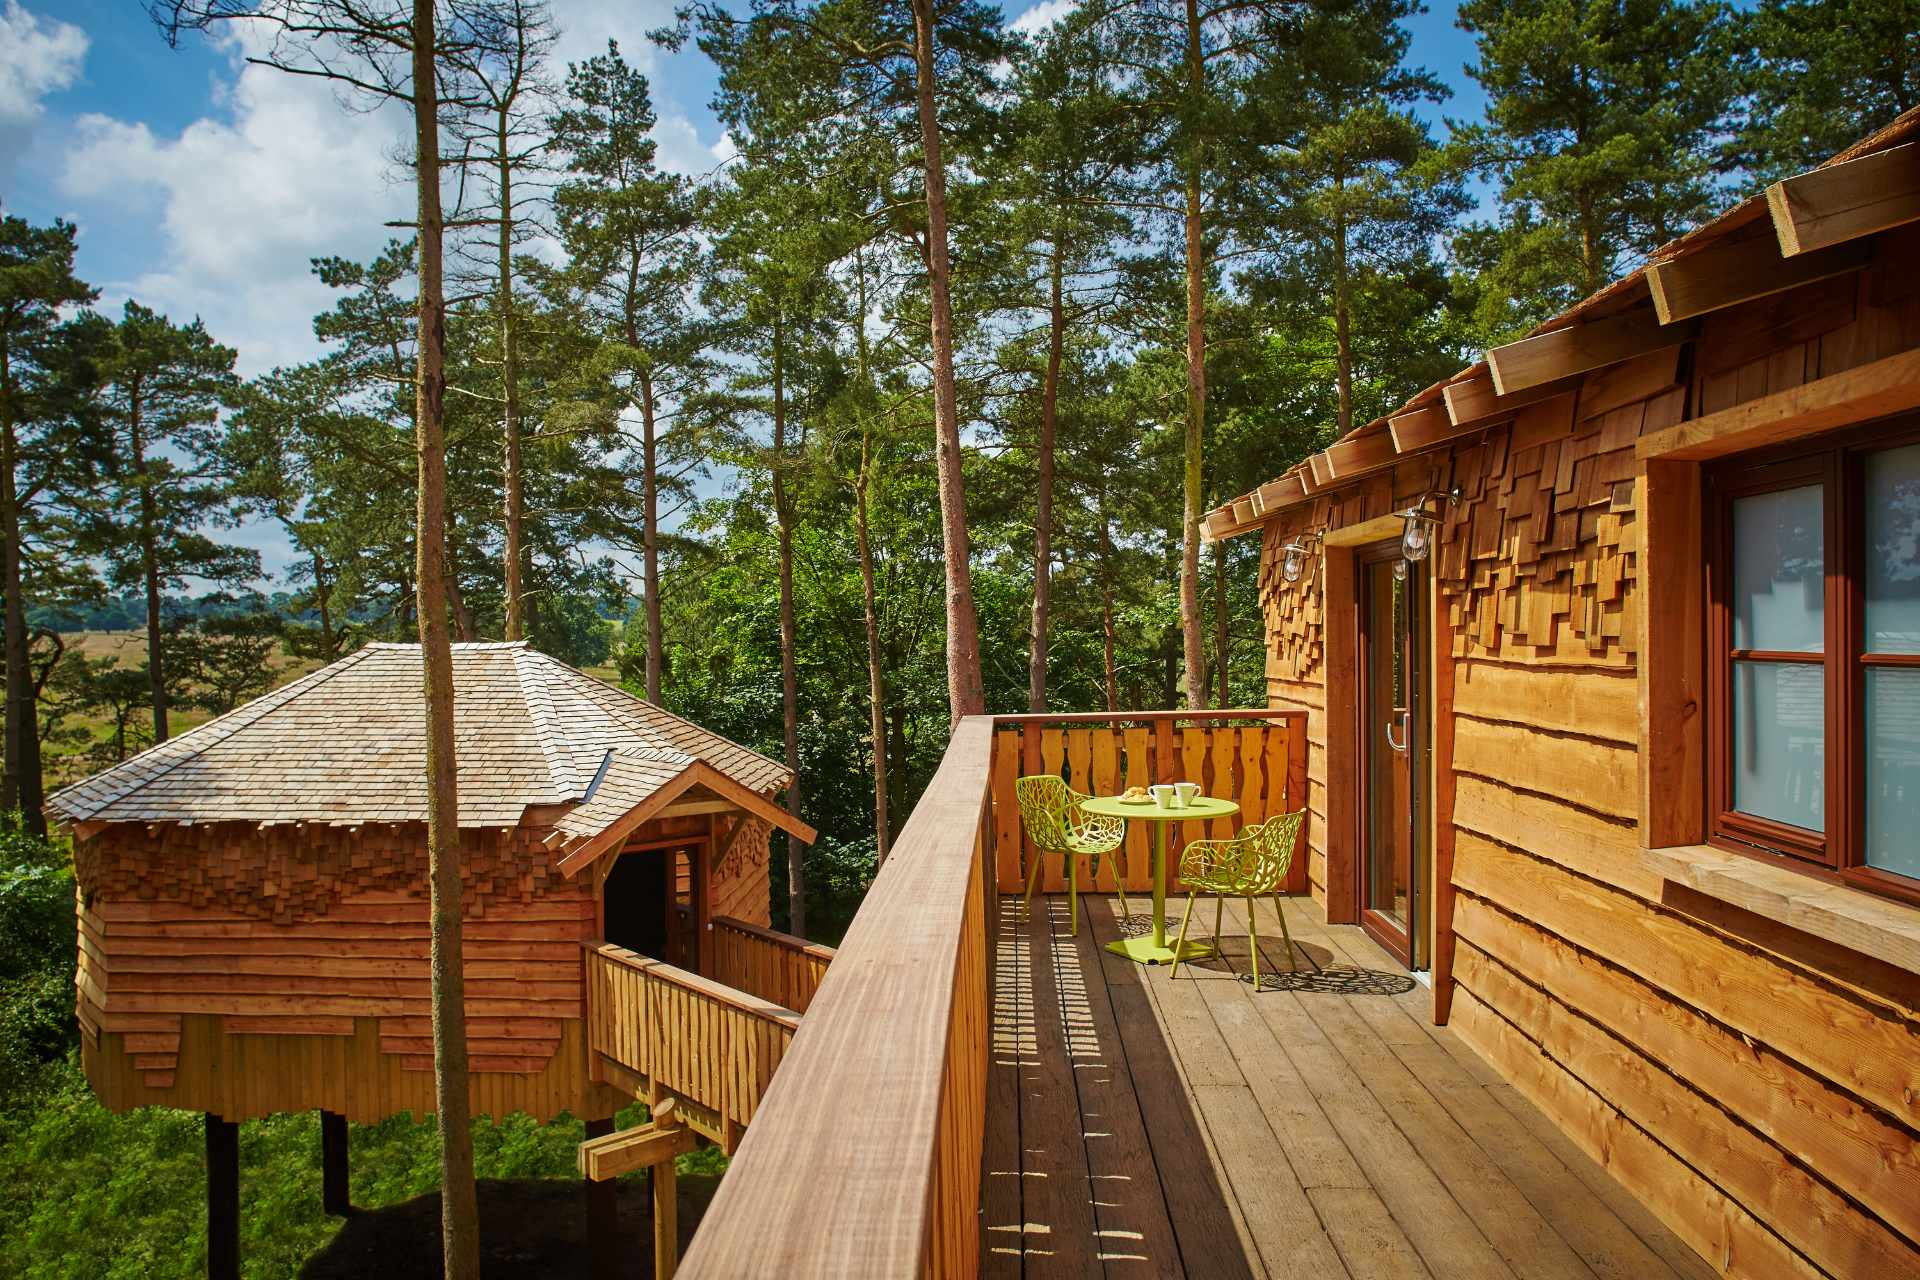 balcony-of-treehouse-at-centre-parcs-longford-forest-treehouses-ireland